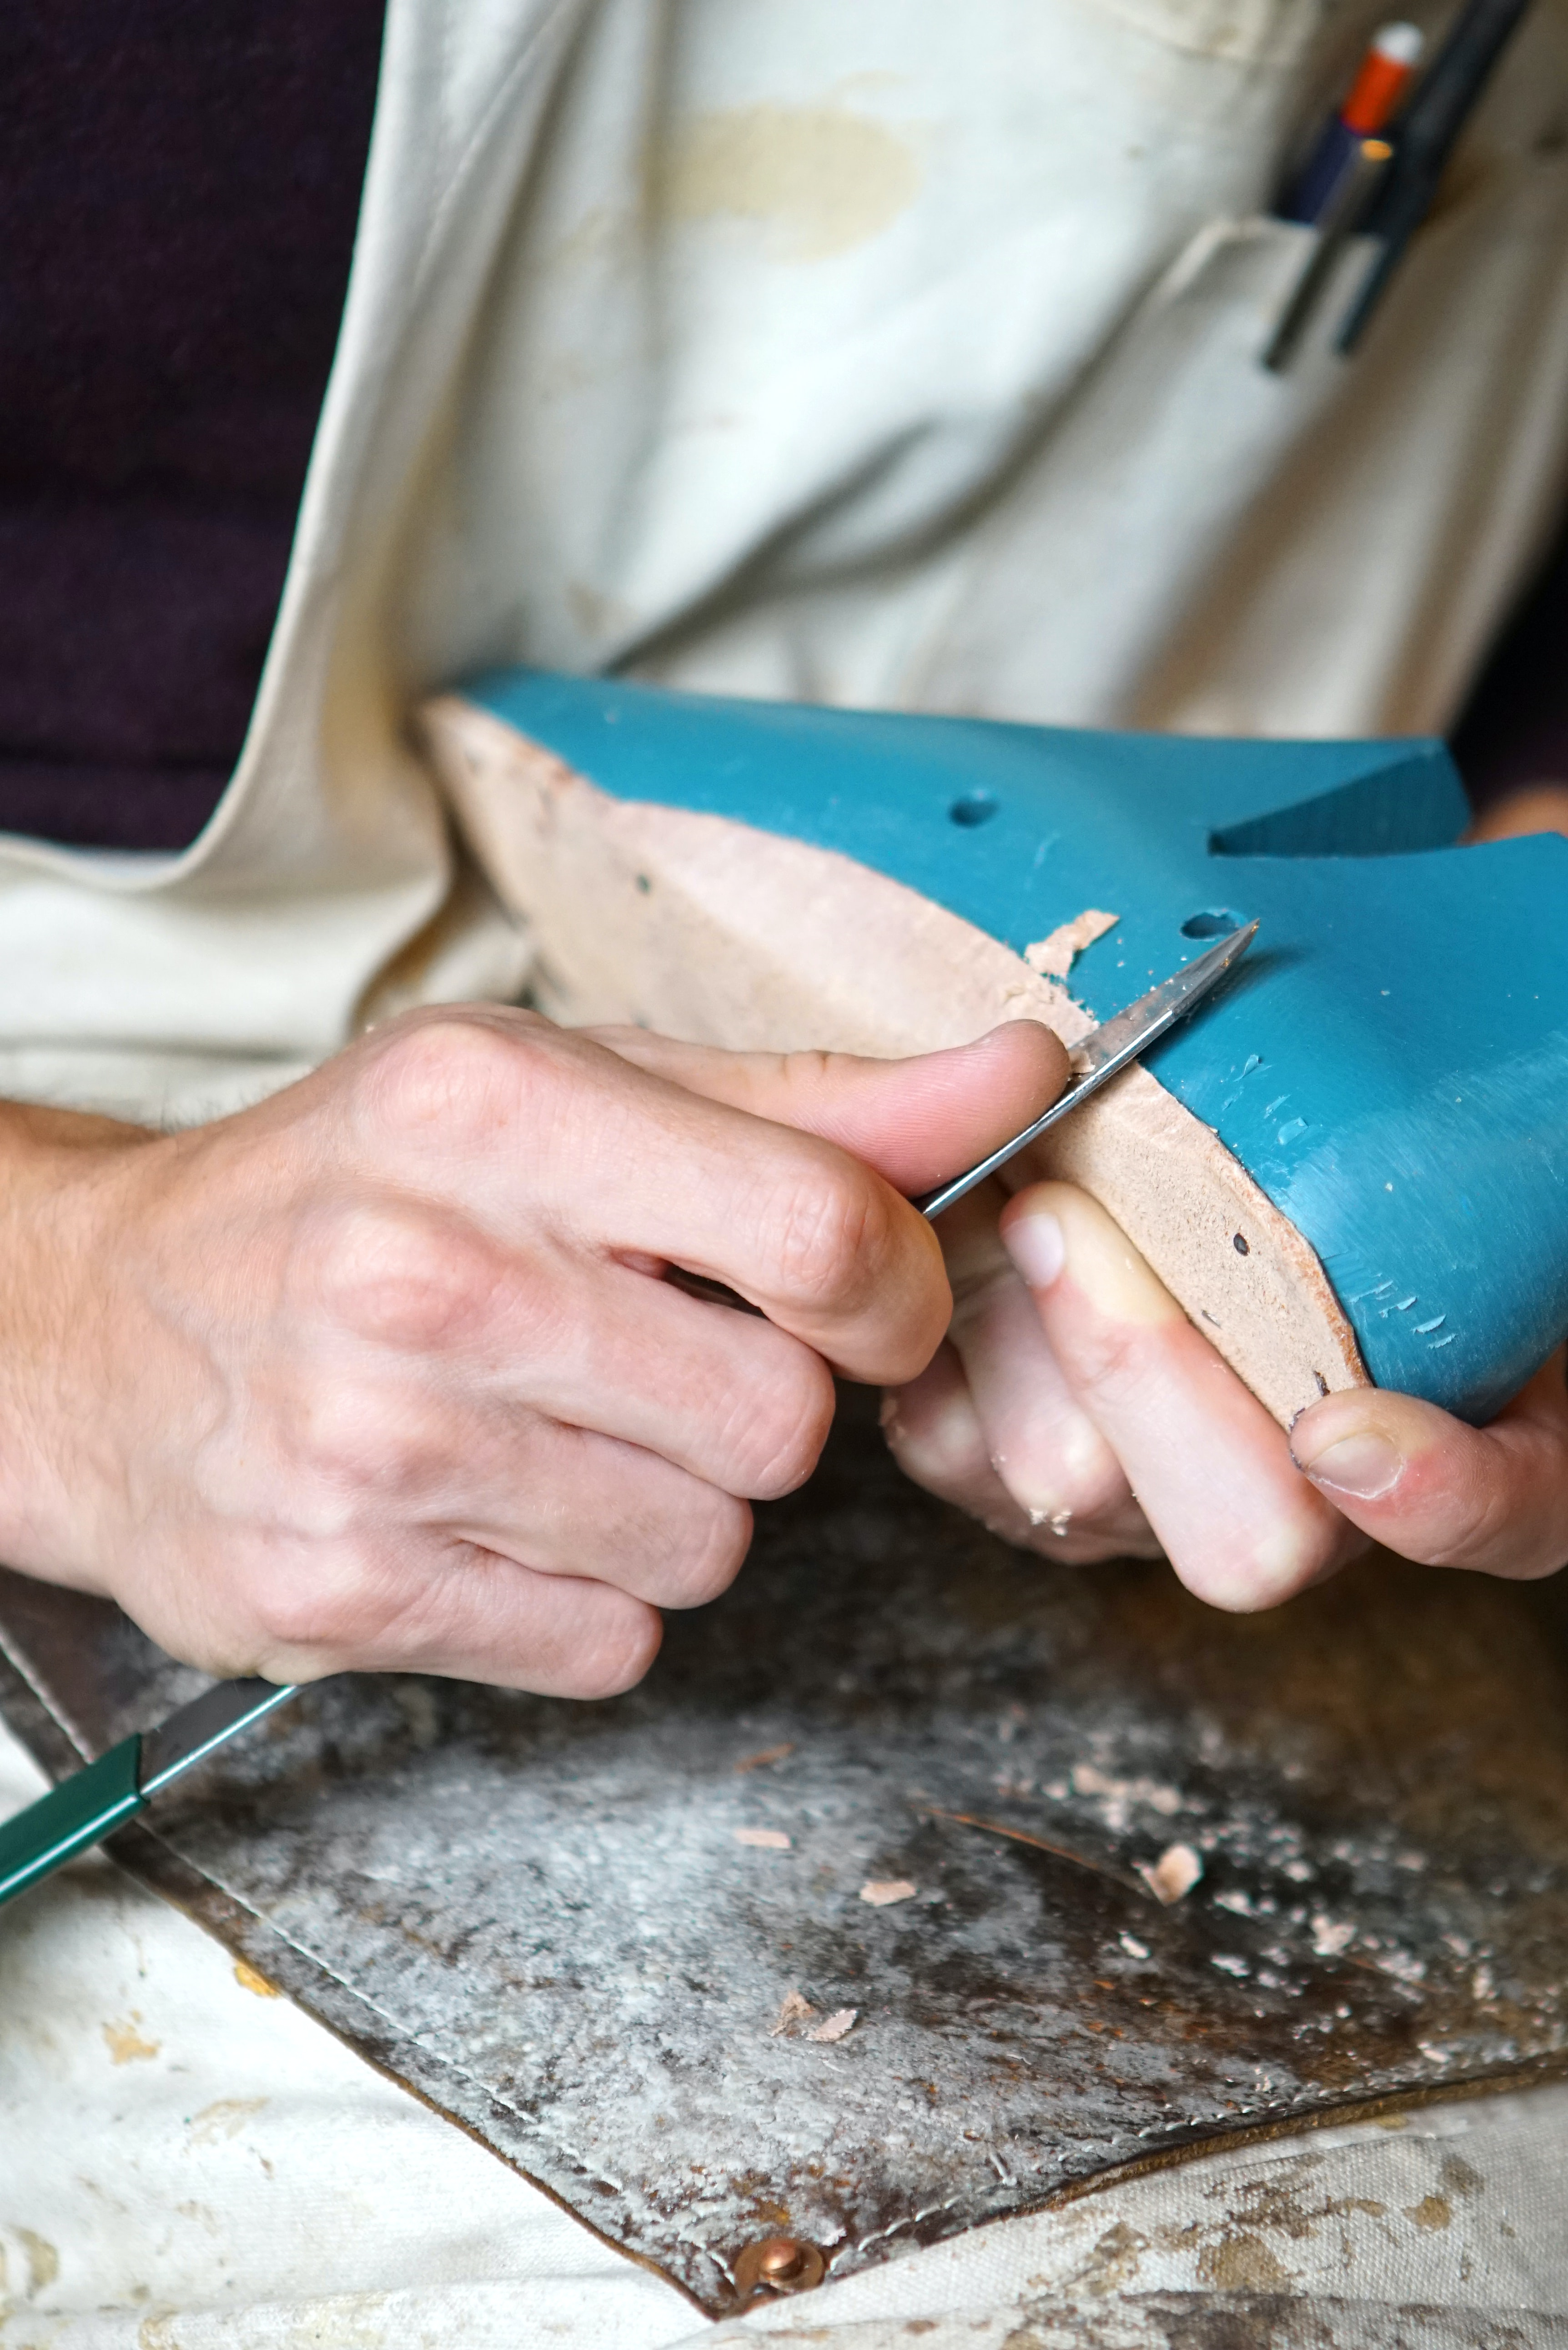 A craftsman carving a pair of shoes out of wood